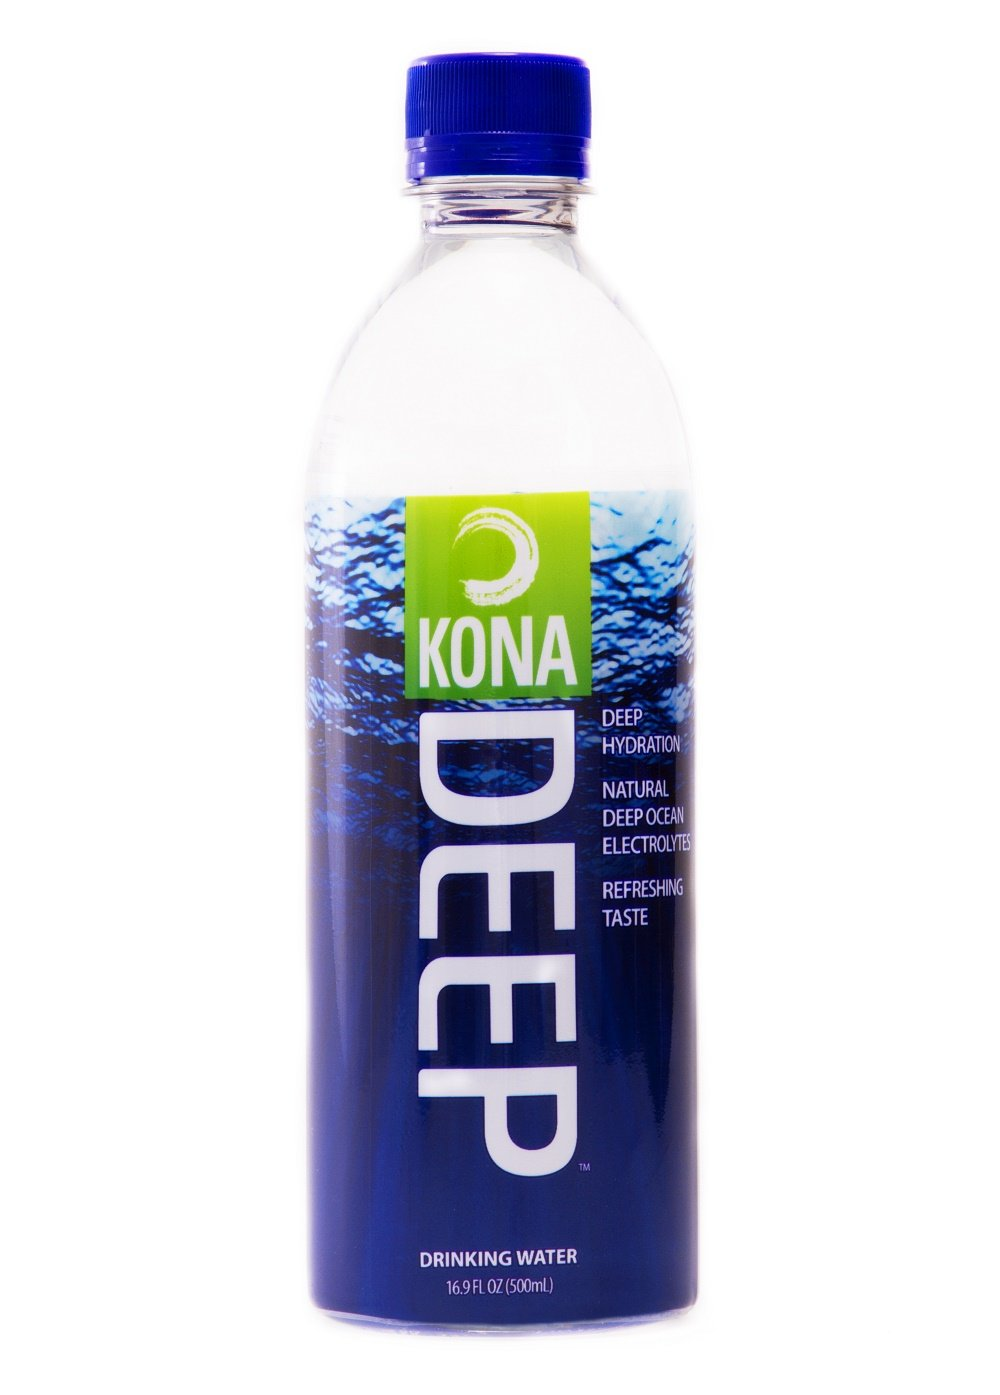 Kona Deep Pure Deep Ocean Electrolyte Mineral Water (500 ML), 24 Count